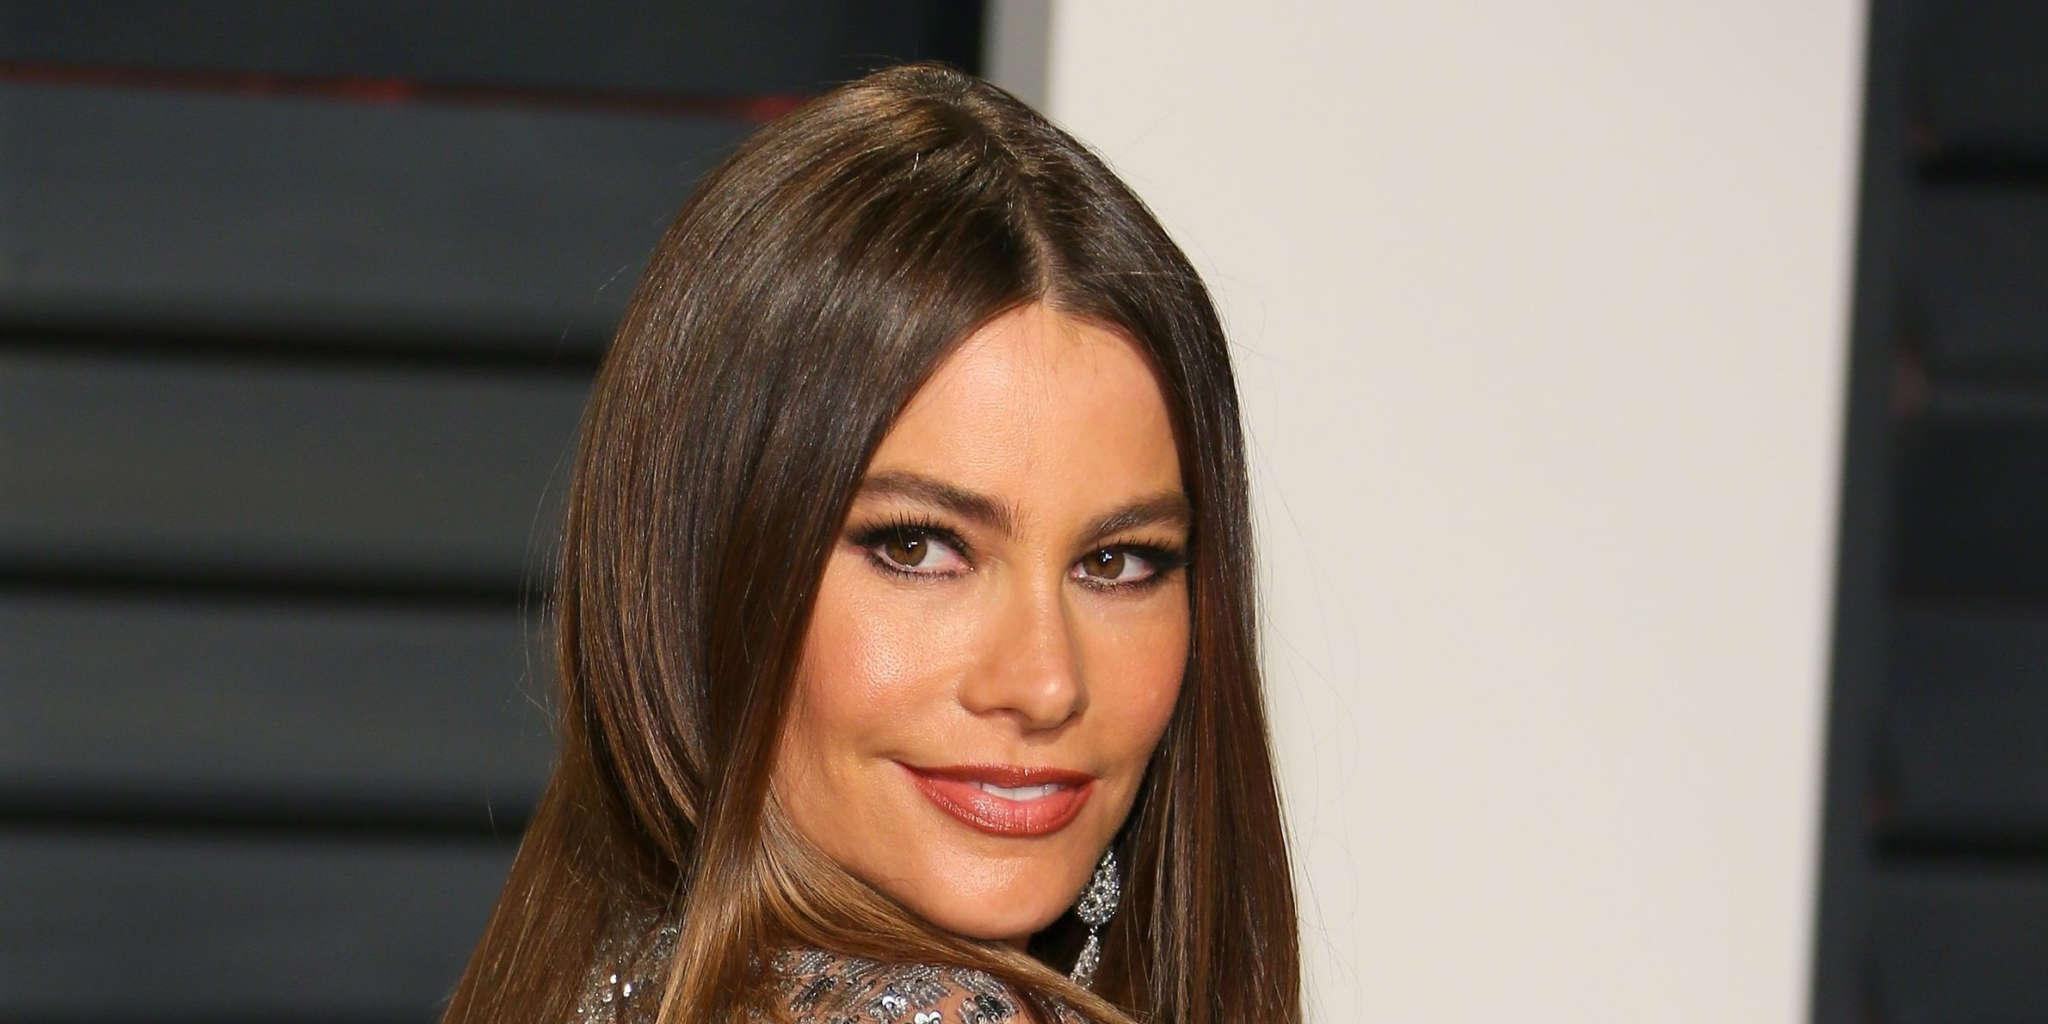 Sofia Vergara Says She Was Not A 'Victim' Of Ellen DeGeneres After Video Goes Viral